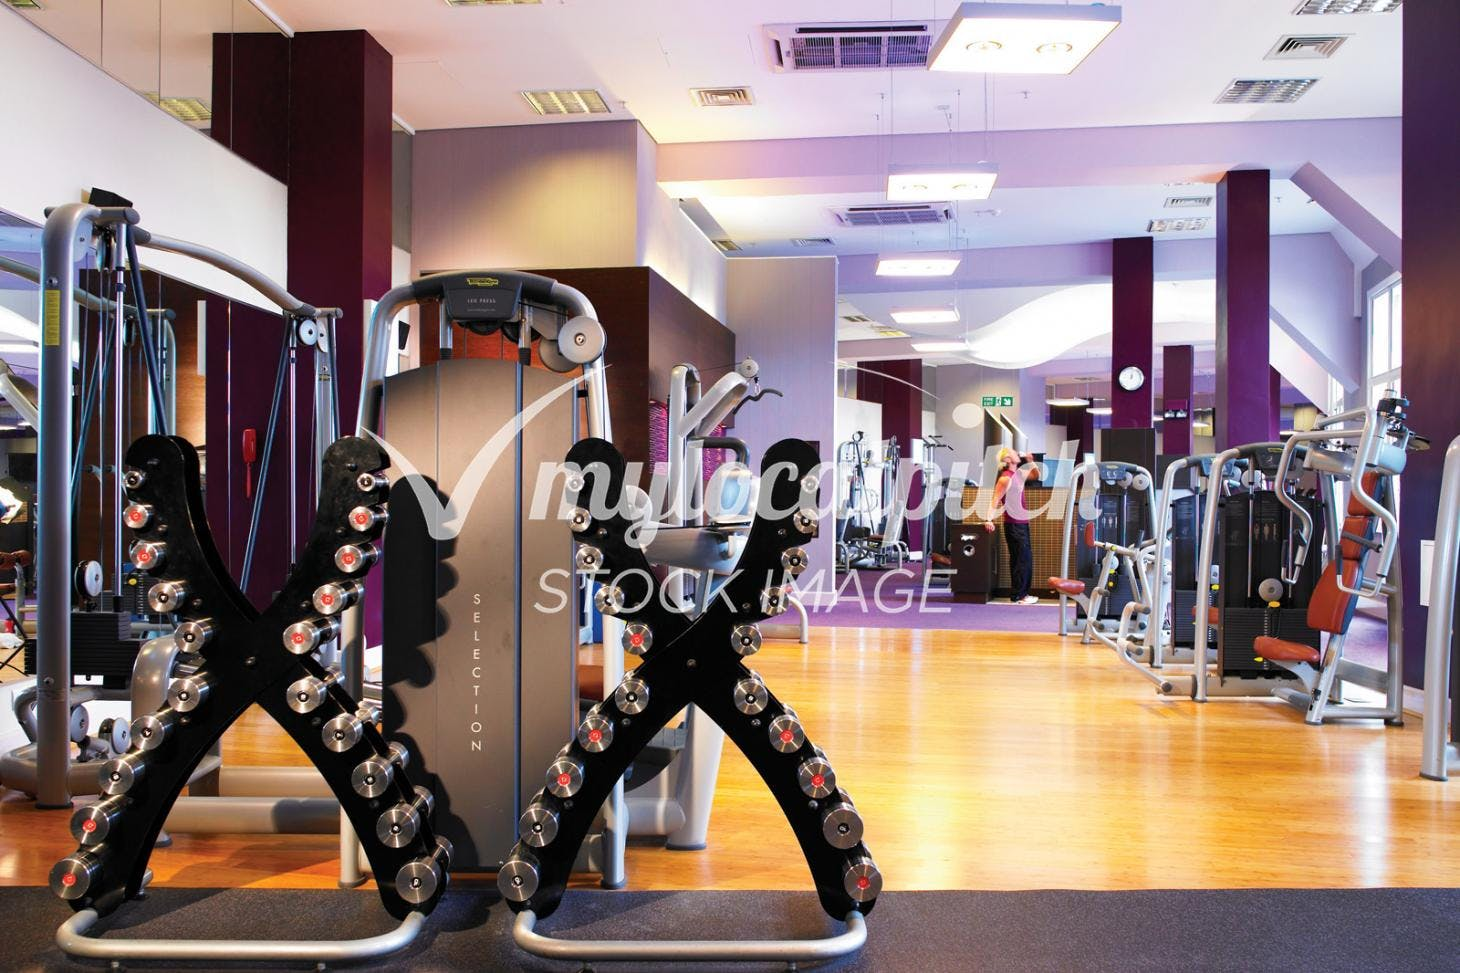 Arches Leisure Centre Gym gym